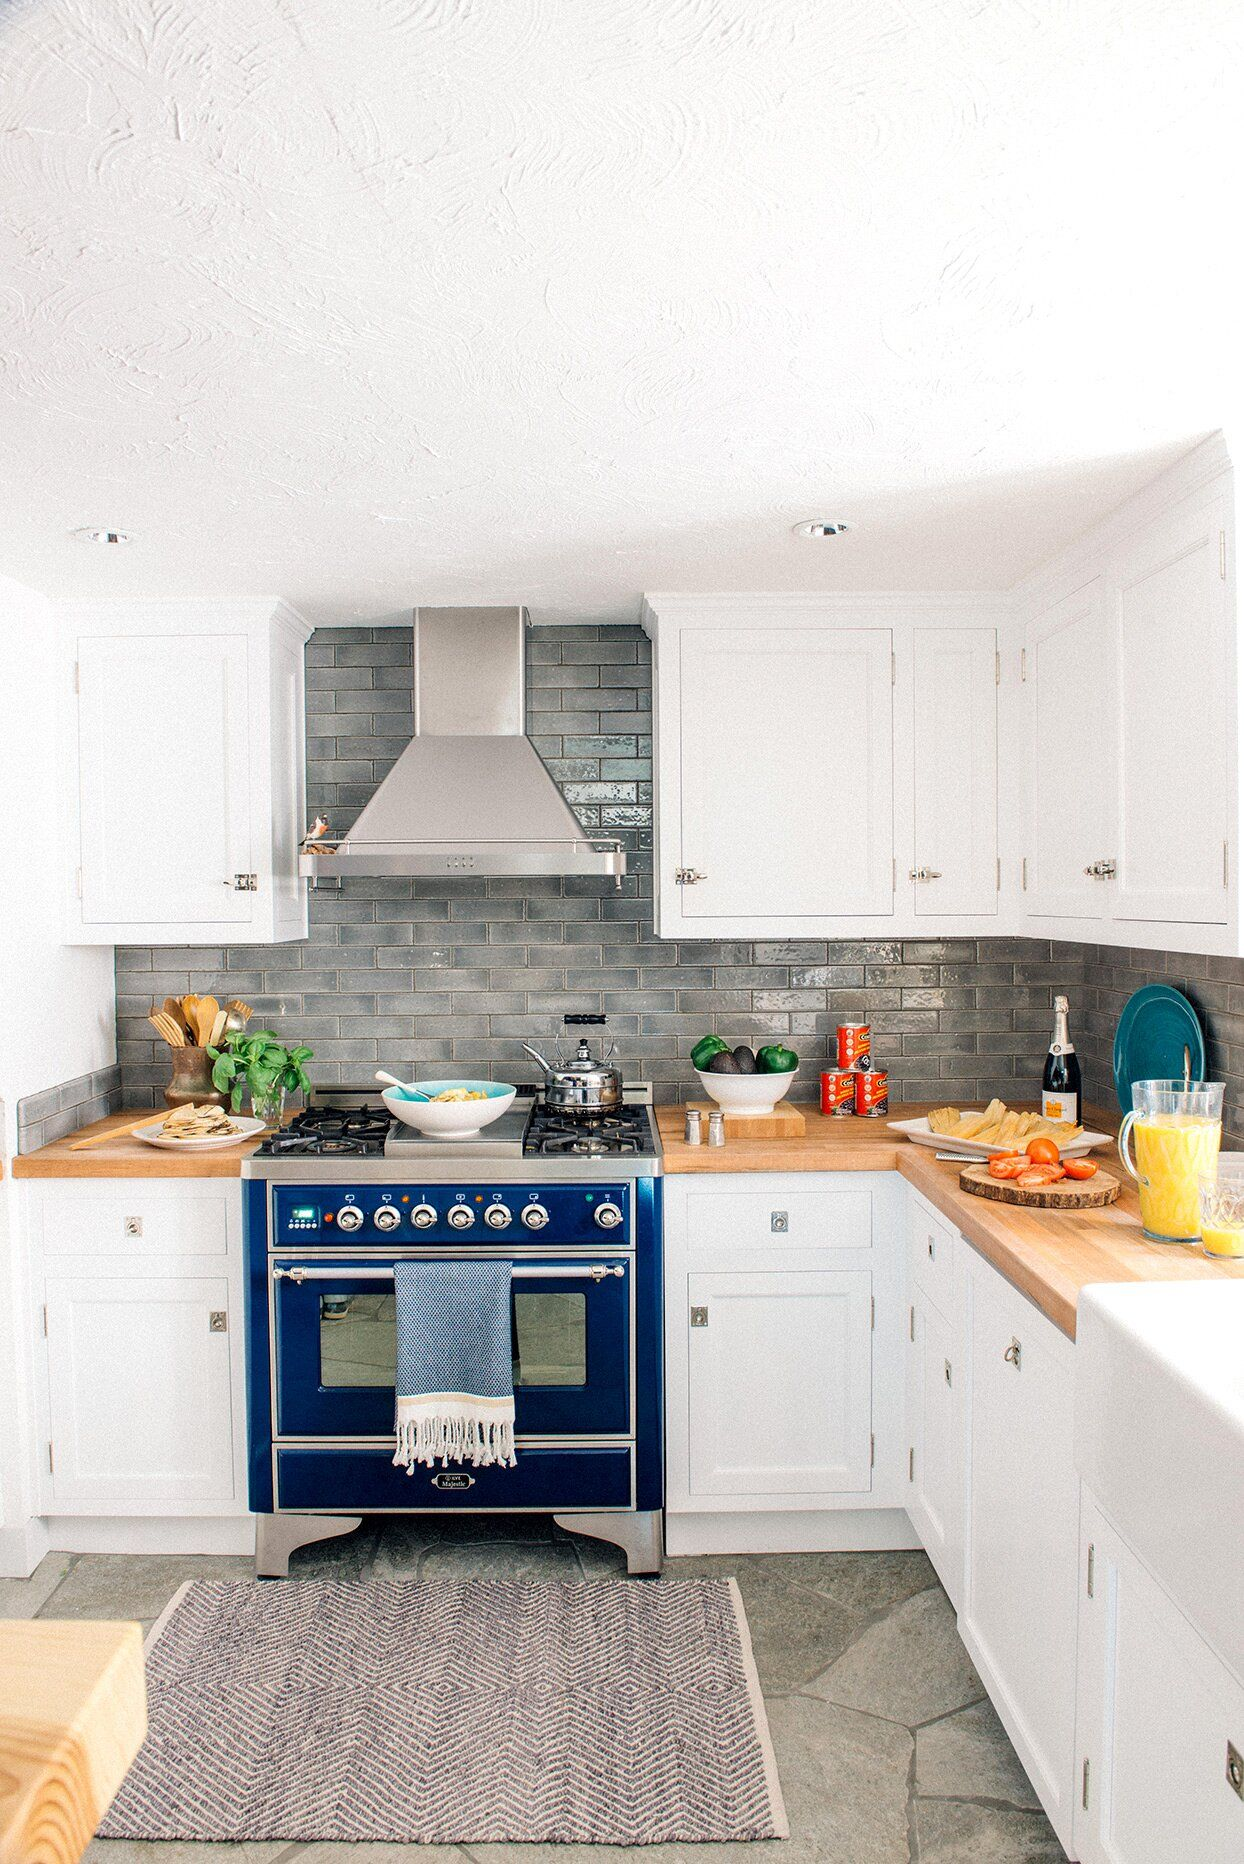 The Easiest Way To Clean Kitchen Cabinets Including Those Tough Grease Stains In 2020 Kitchen Design Small Clean Kitchen Cabinets Blue Kitchen Designs